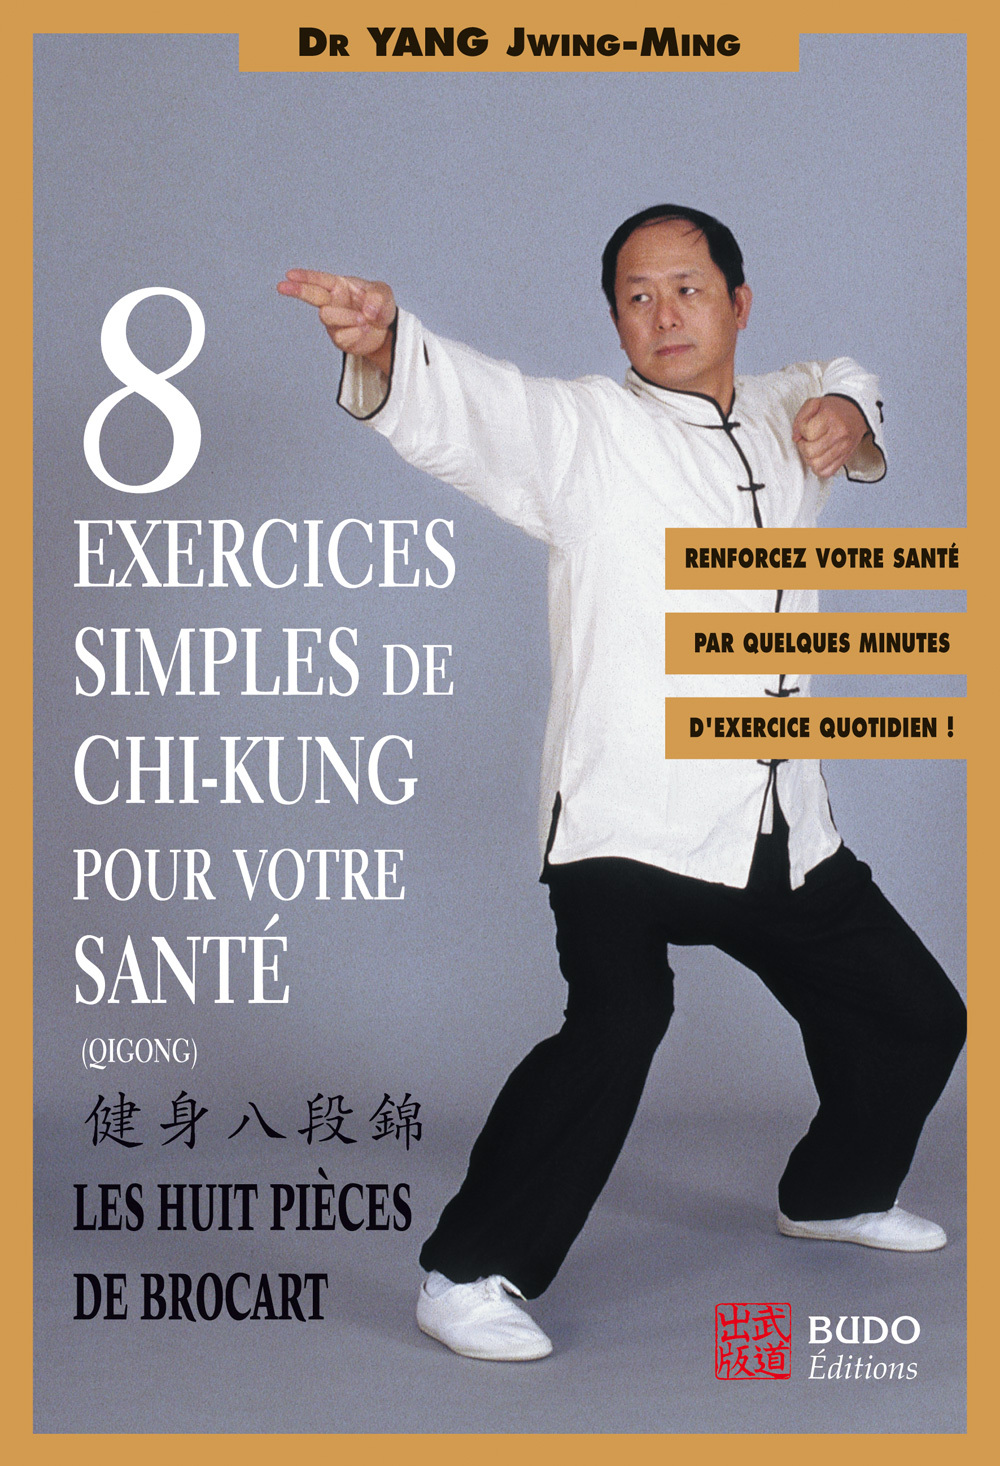 8 EXERCICES SIMPLES DE CHI-KUNG